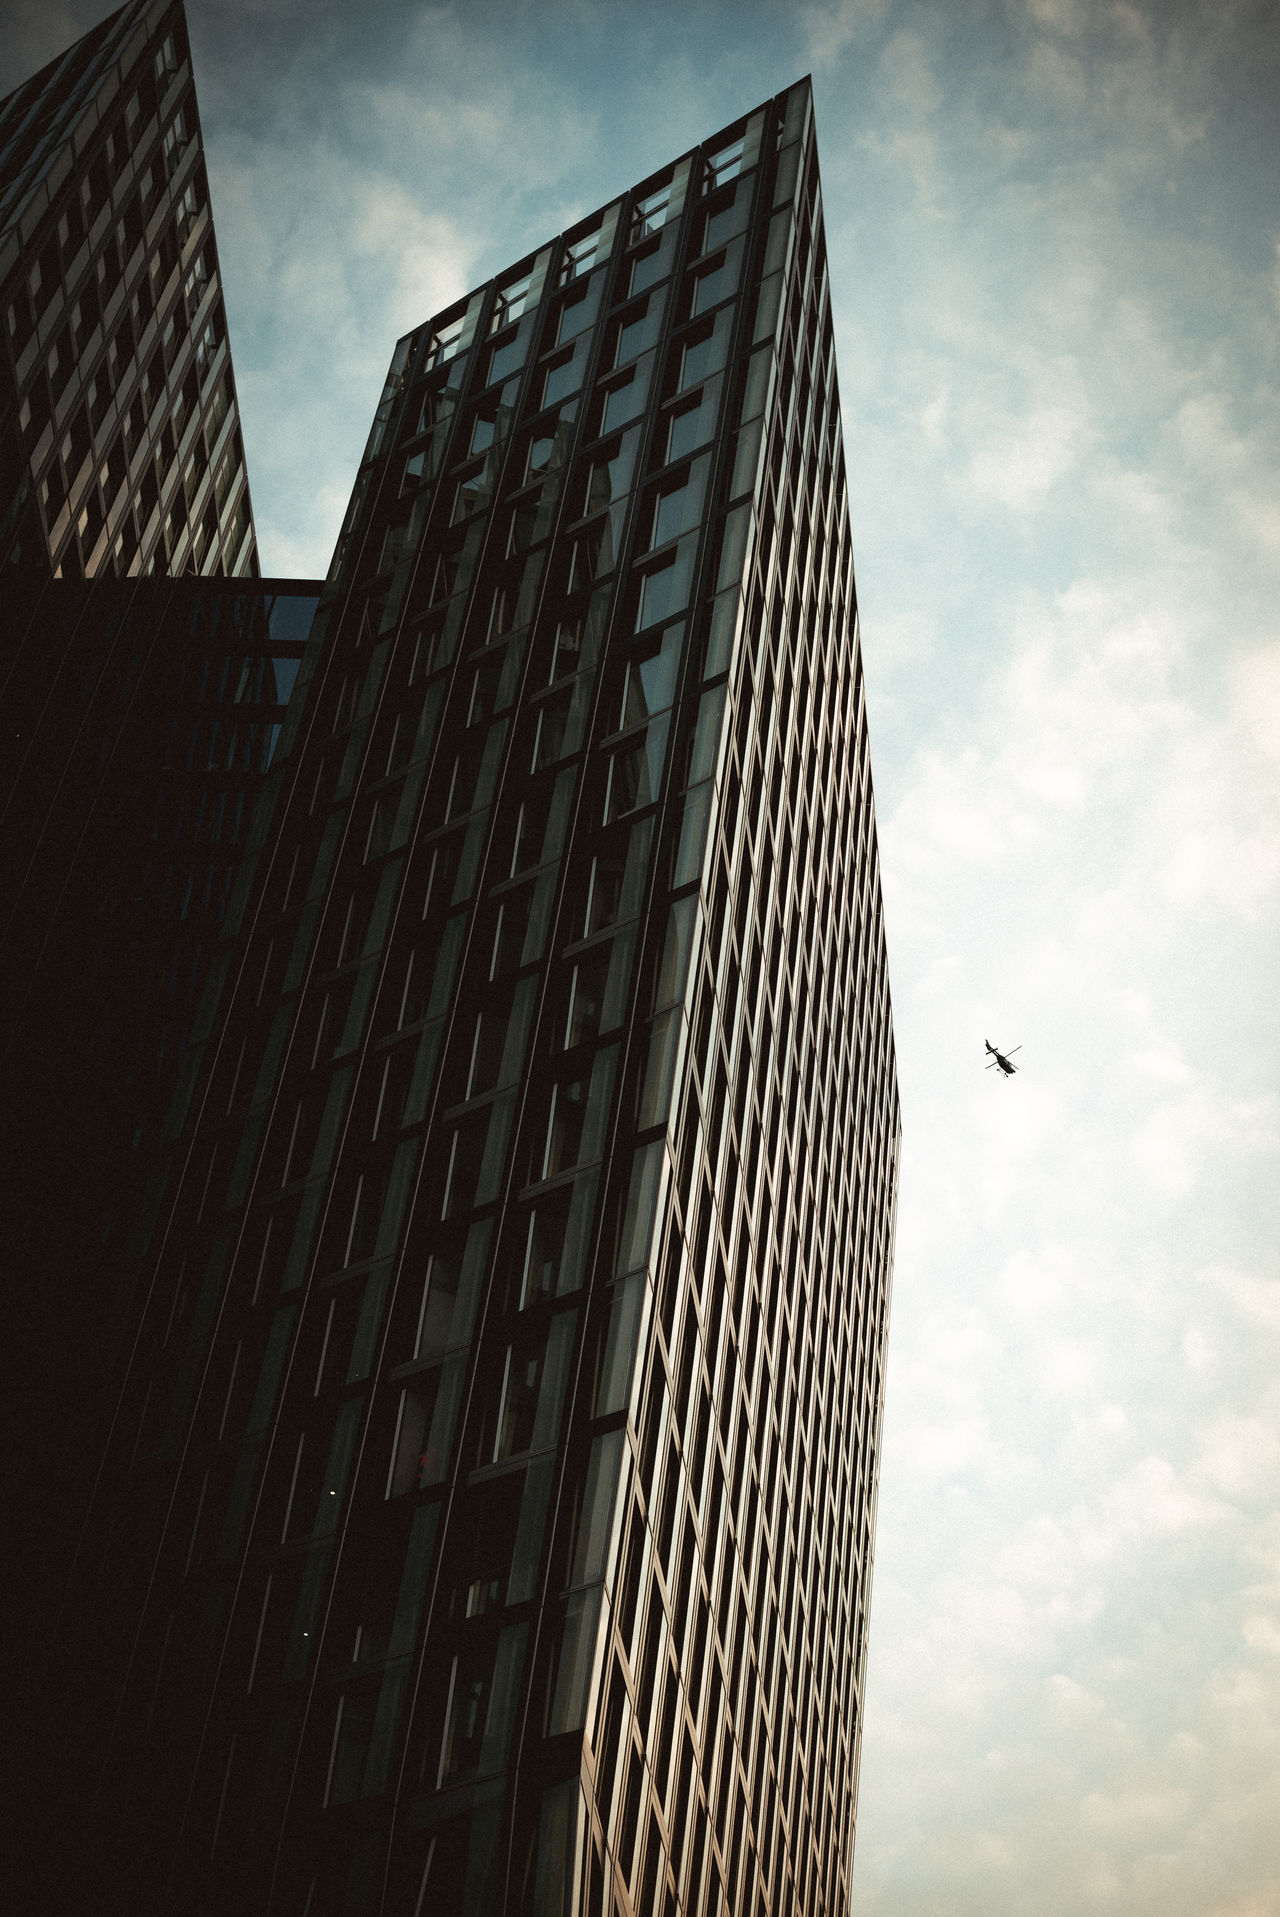 Architecture Low Angle View Sky Built Structure Skyscraper Building Exterior Cloud - Sky Modern Outdoors Animal Themes Day Travel Destinations No People Flying Bird City G20 Hamburg Hamburg City Politics G20 Meeting G20 Gipfel